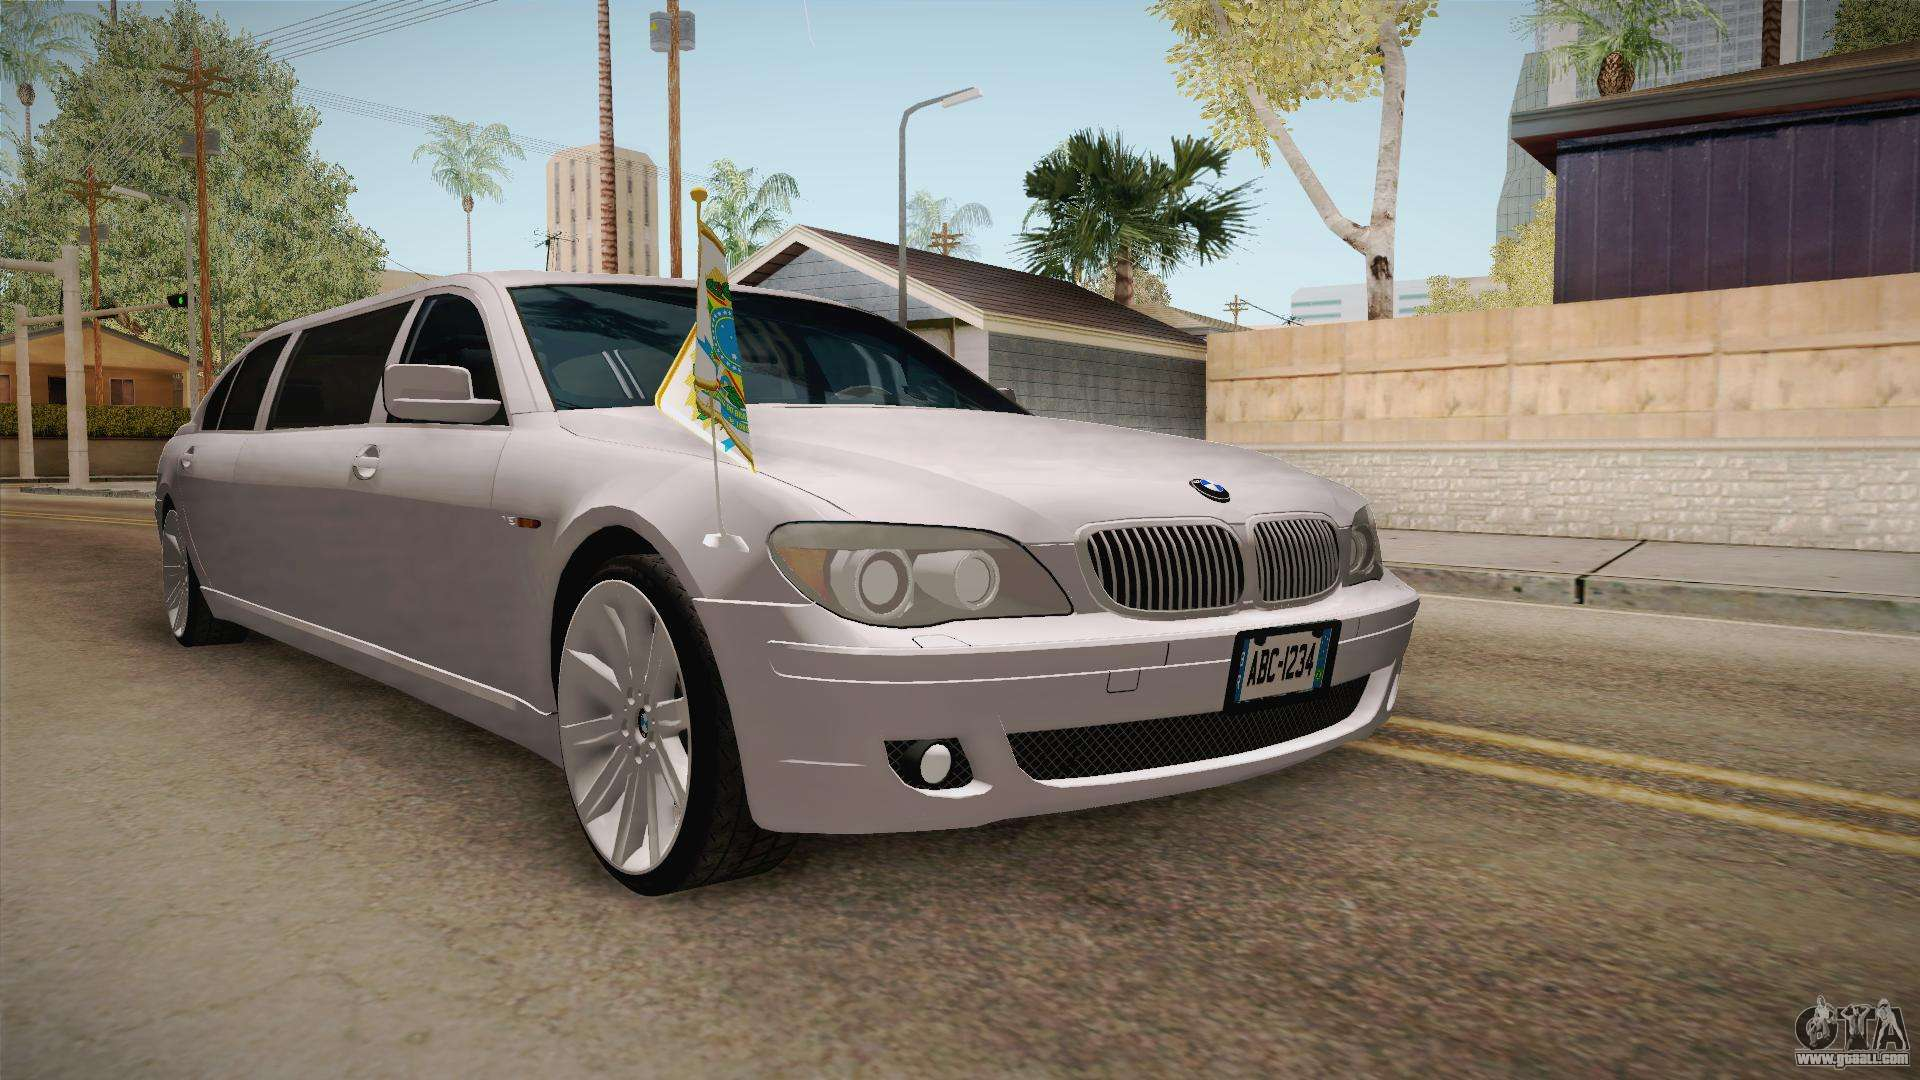 bmw e66 7 series limousine for gta san andreas. Black Bedroom Furniture Sets. Home Design Ideas